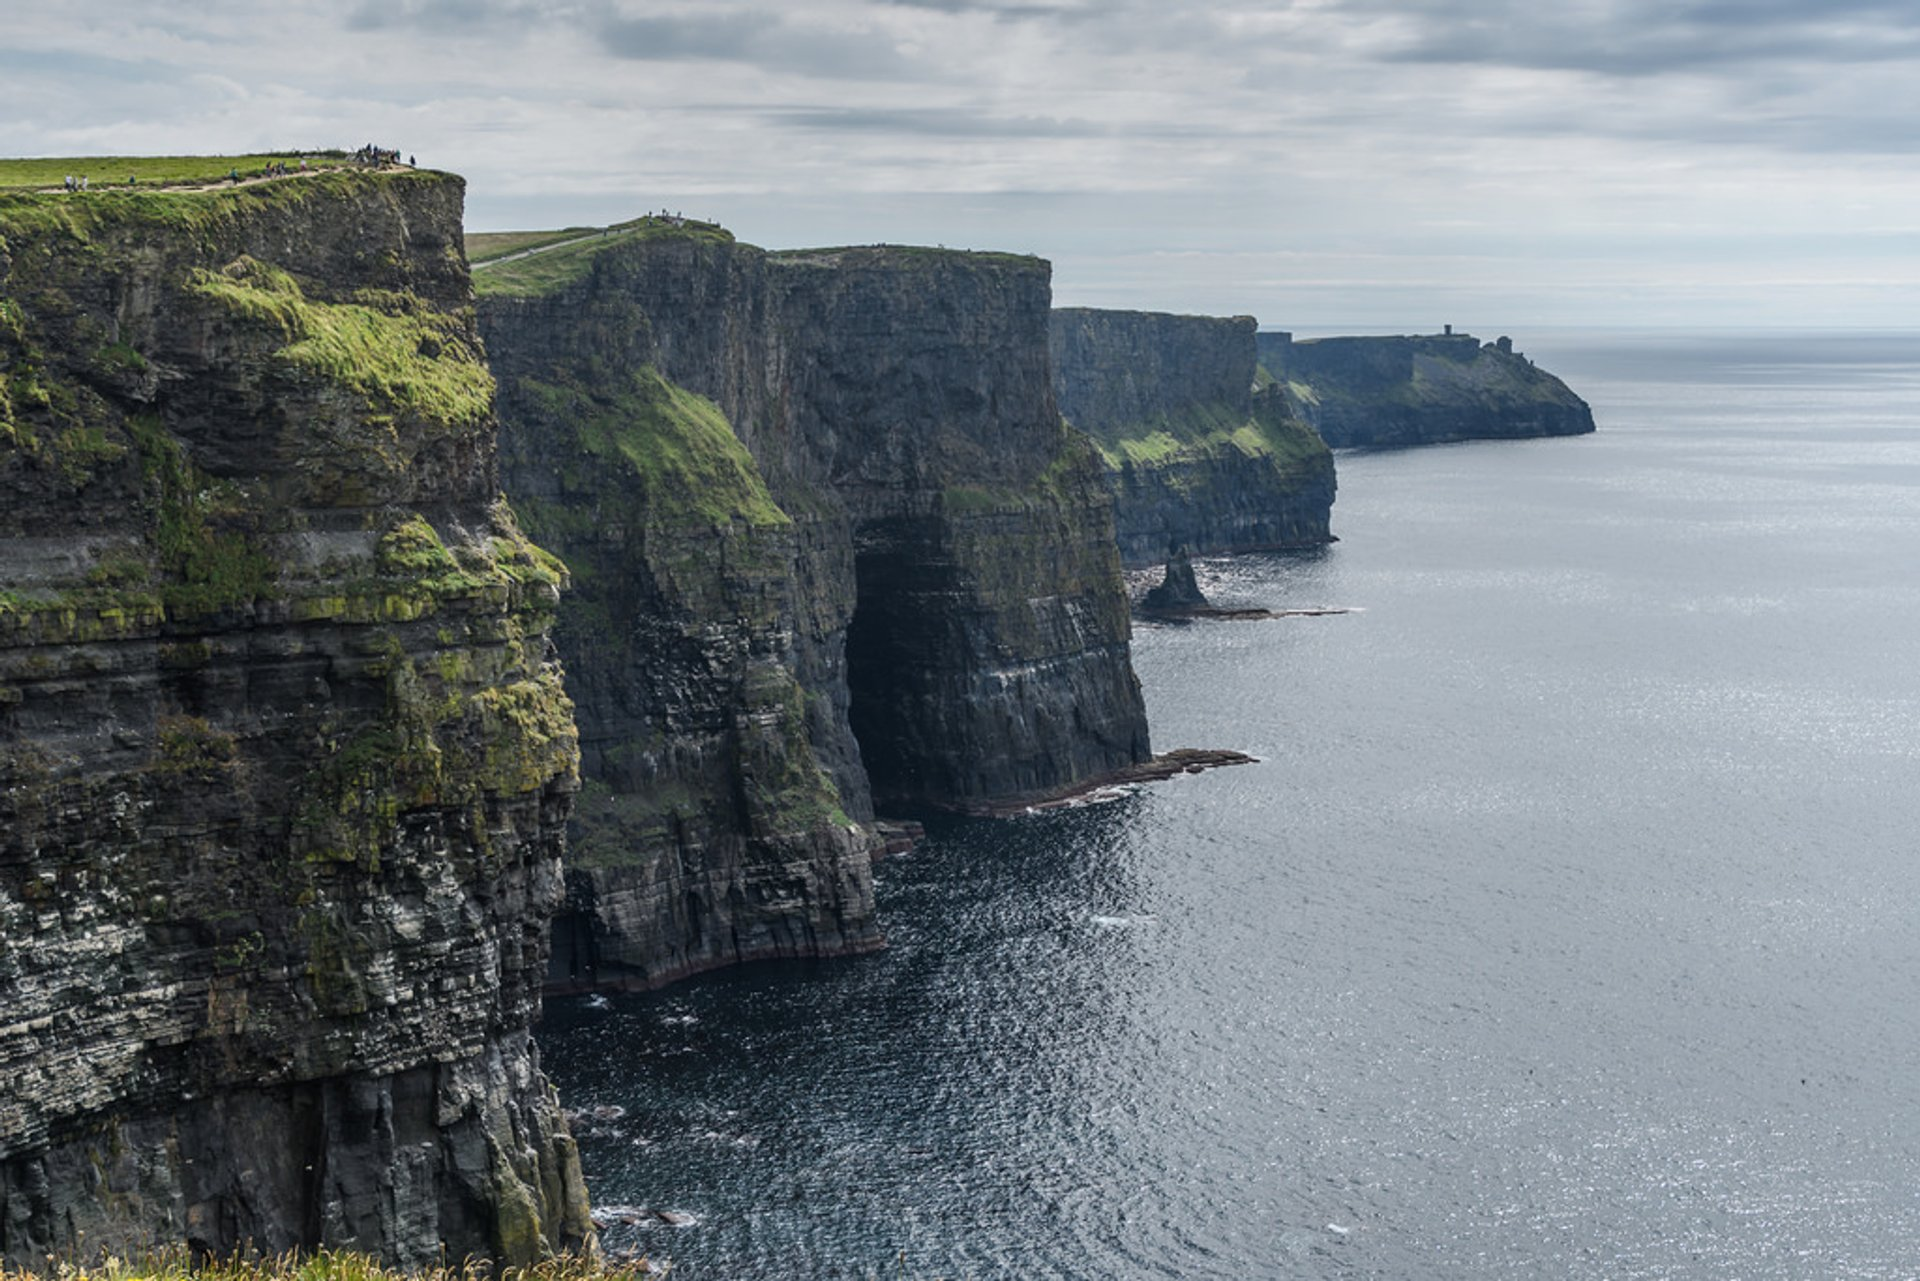 Cliffs of Moher in Ireland 2019 - Best Time